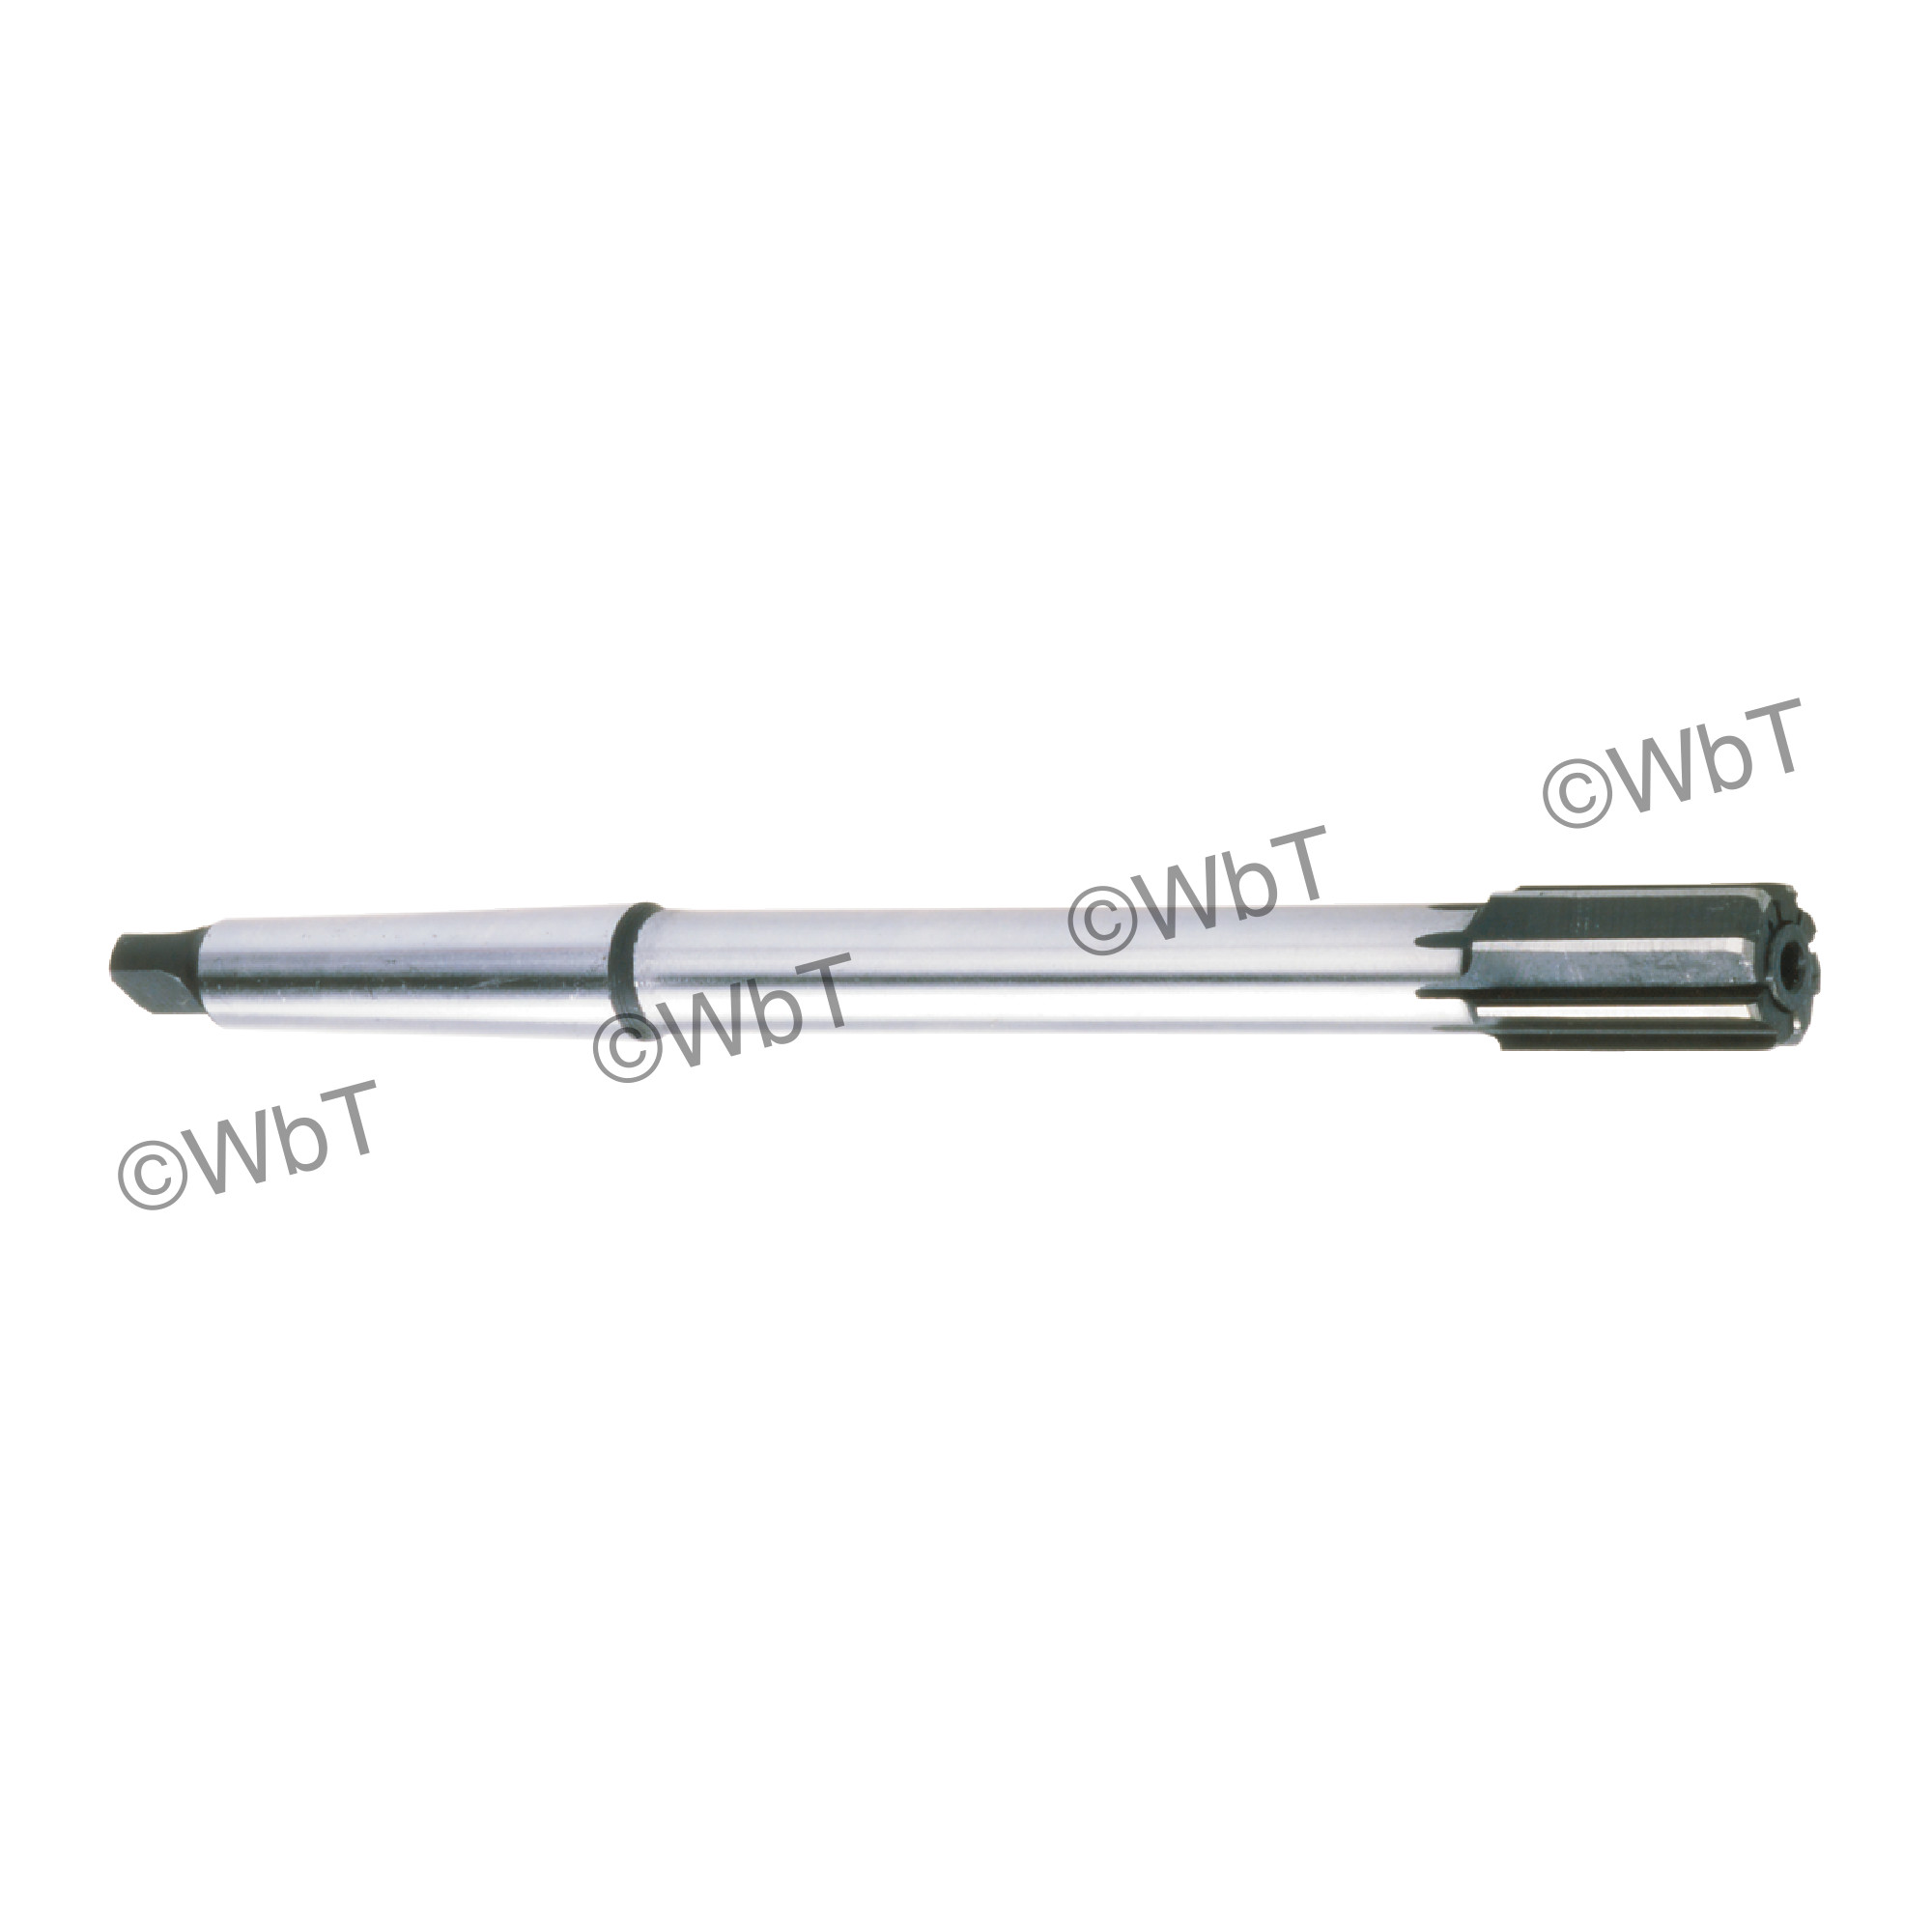 Straight Flute Expansion Chucking Reamers